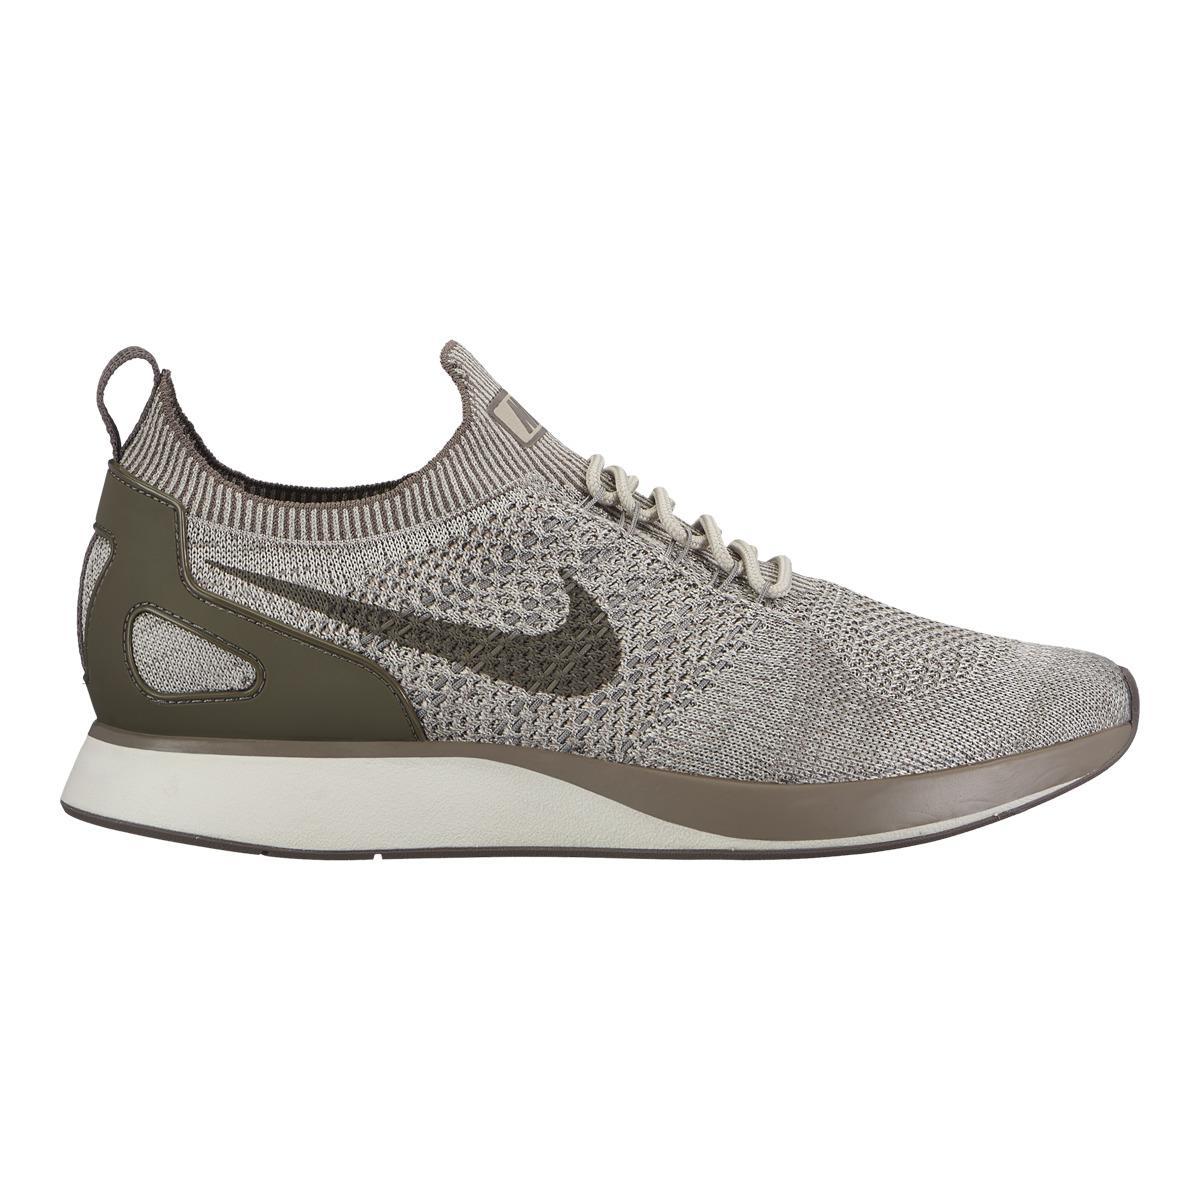 143d3053e2e4 Lyst - Nike Air Zoom Mariah Flyknit Racer Casual Trainers in Gray ...